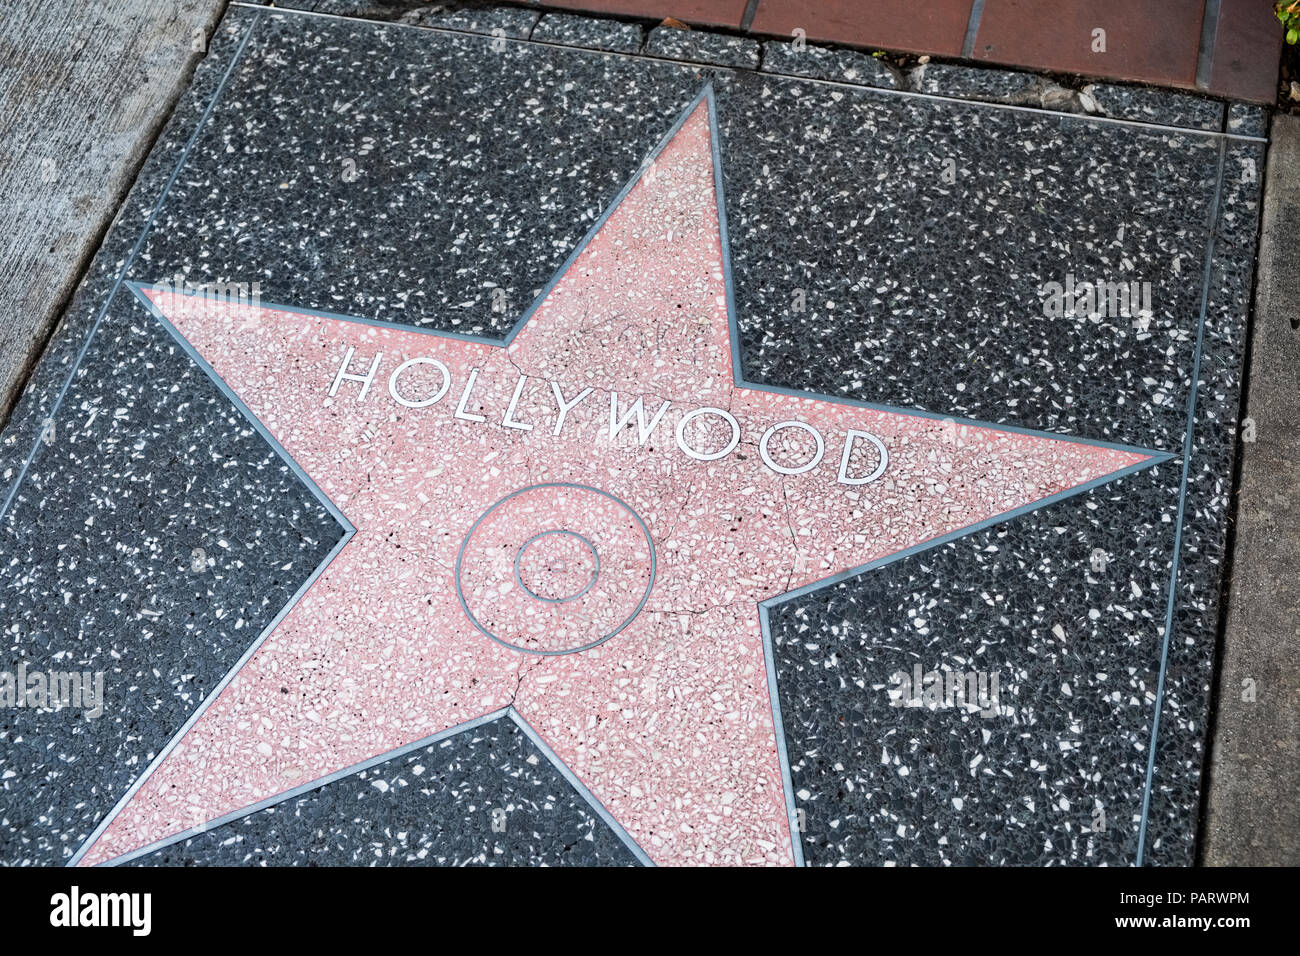 Stern auf dem Hollywood Walk of Fame, Hollywood Boulevard, Los Angeles, LA, Kalifornien, USA Stockbild